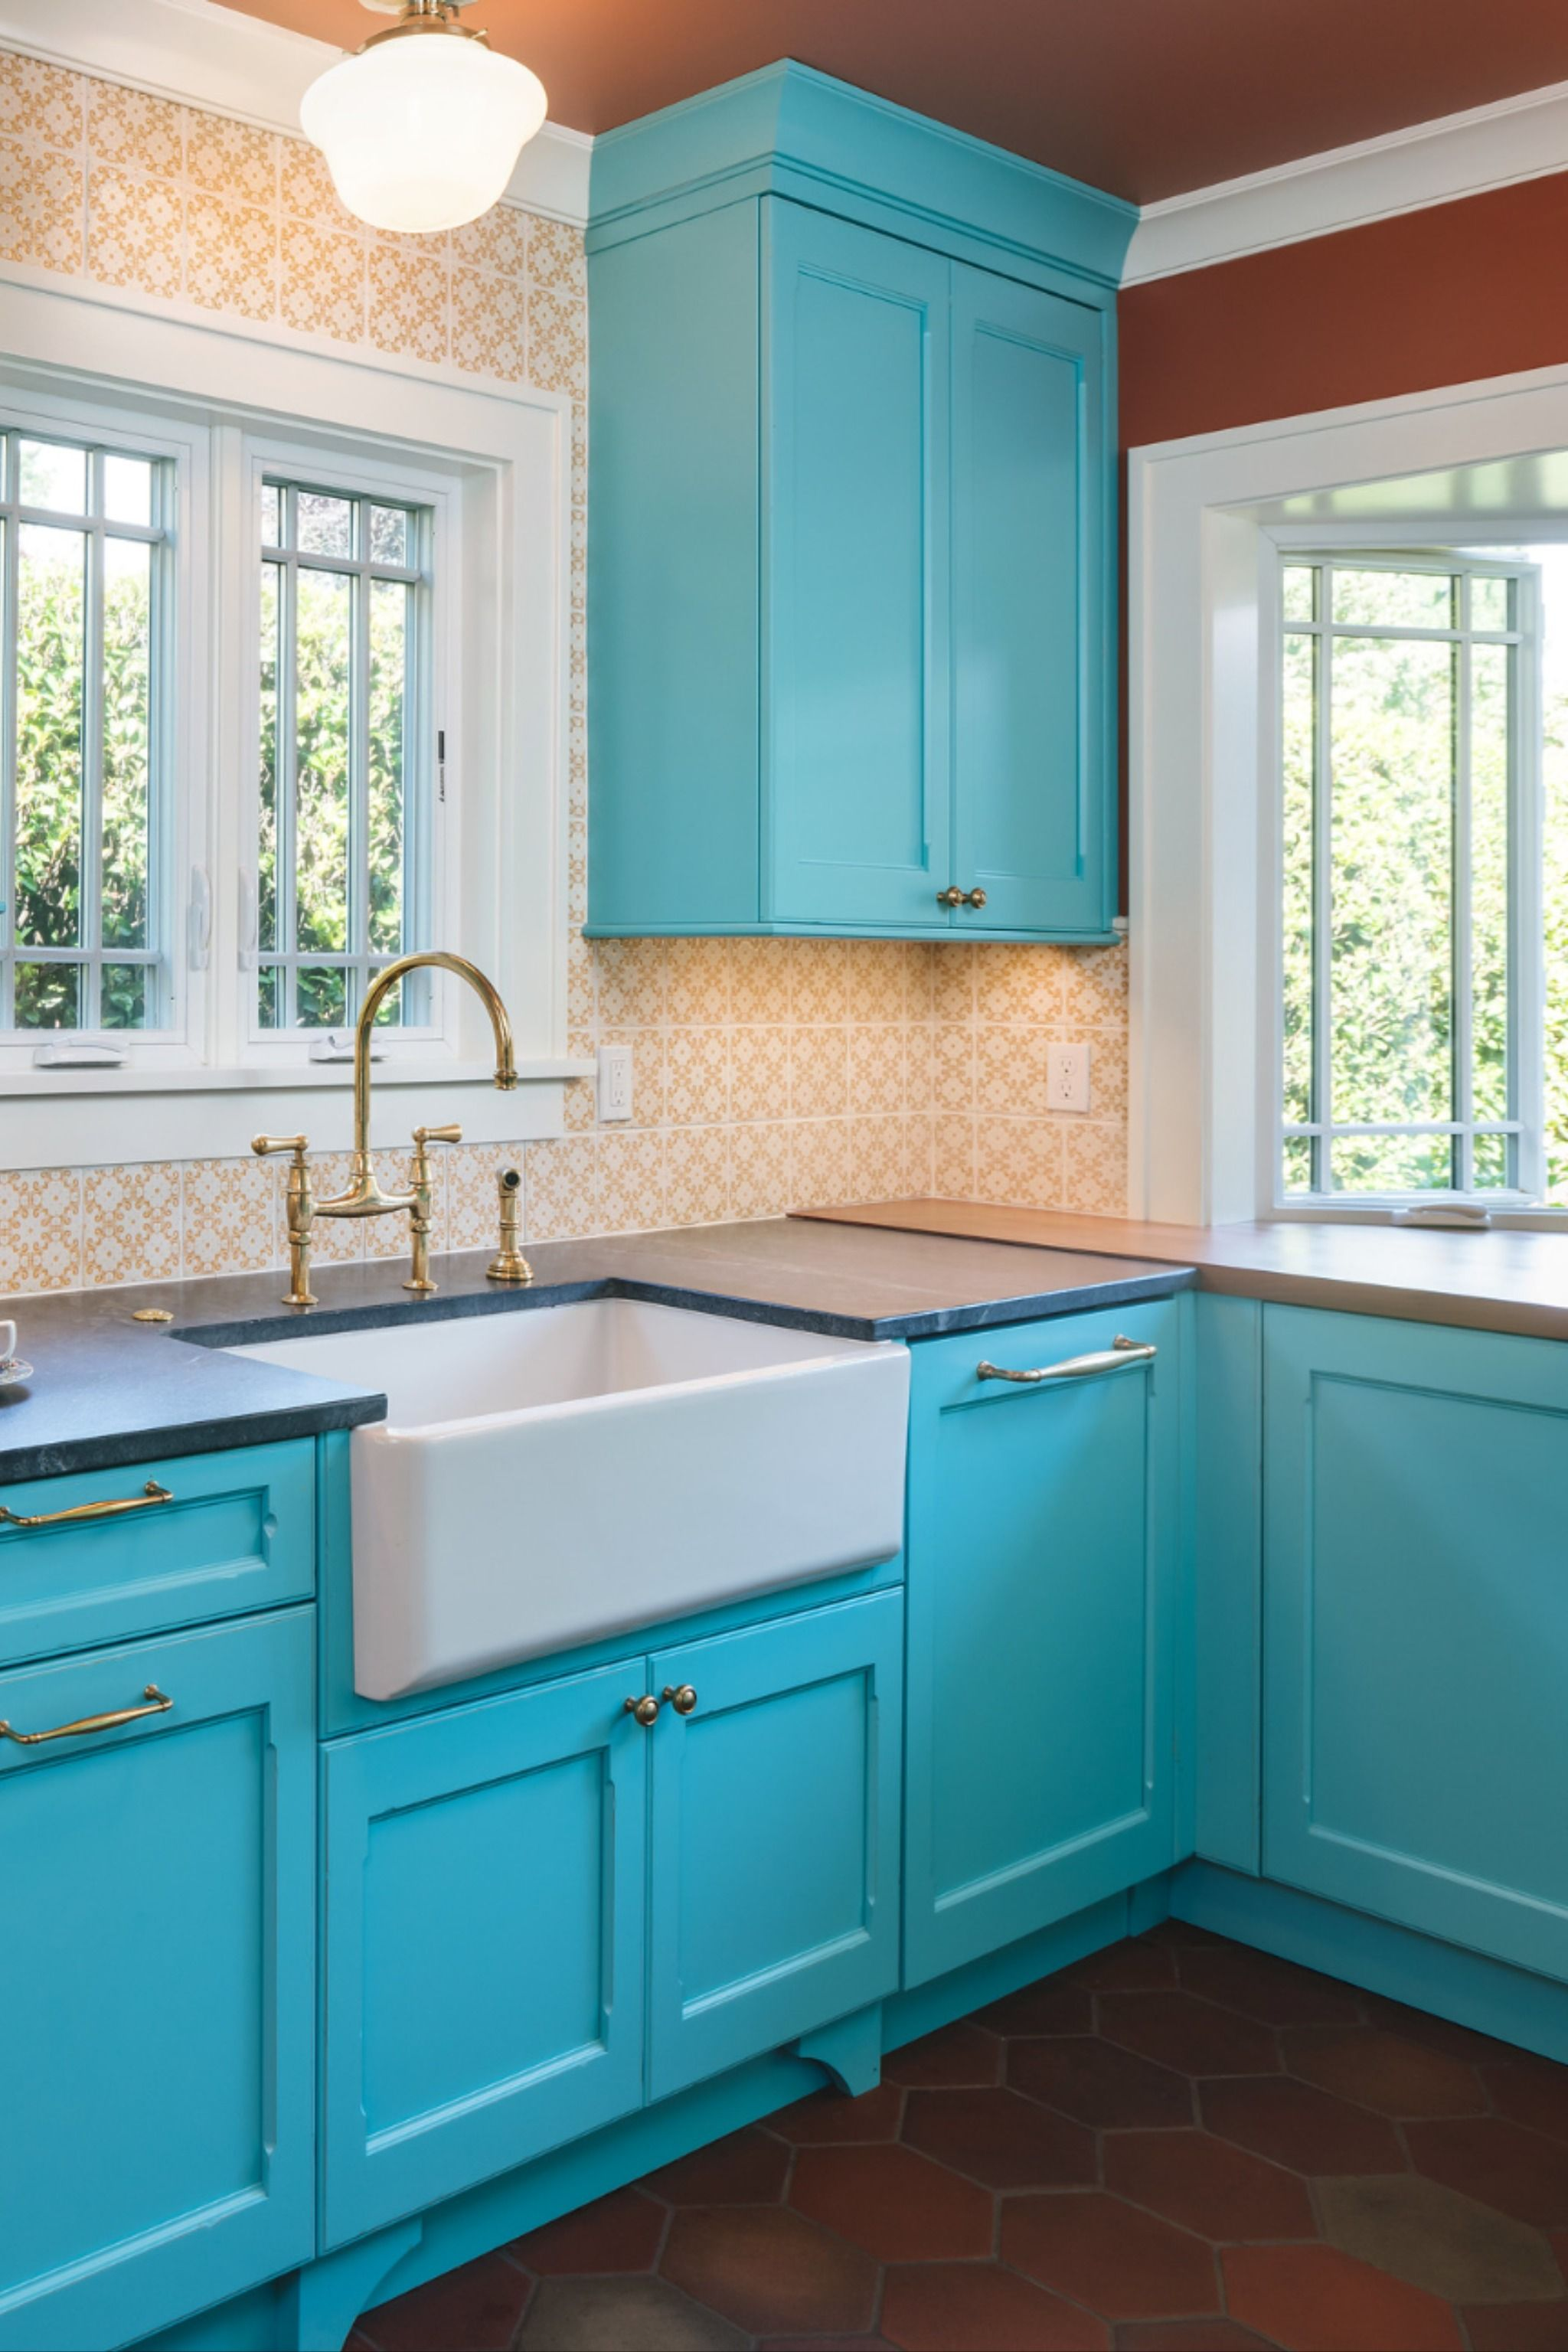 Bold Turquoise Kitchen Remodel In 2020 Bold Kitchen Kitchen Cabinets Decor Kitchen Remodel